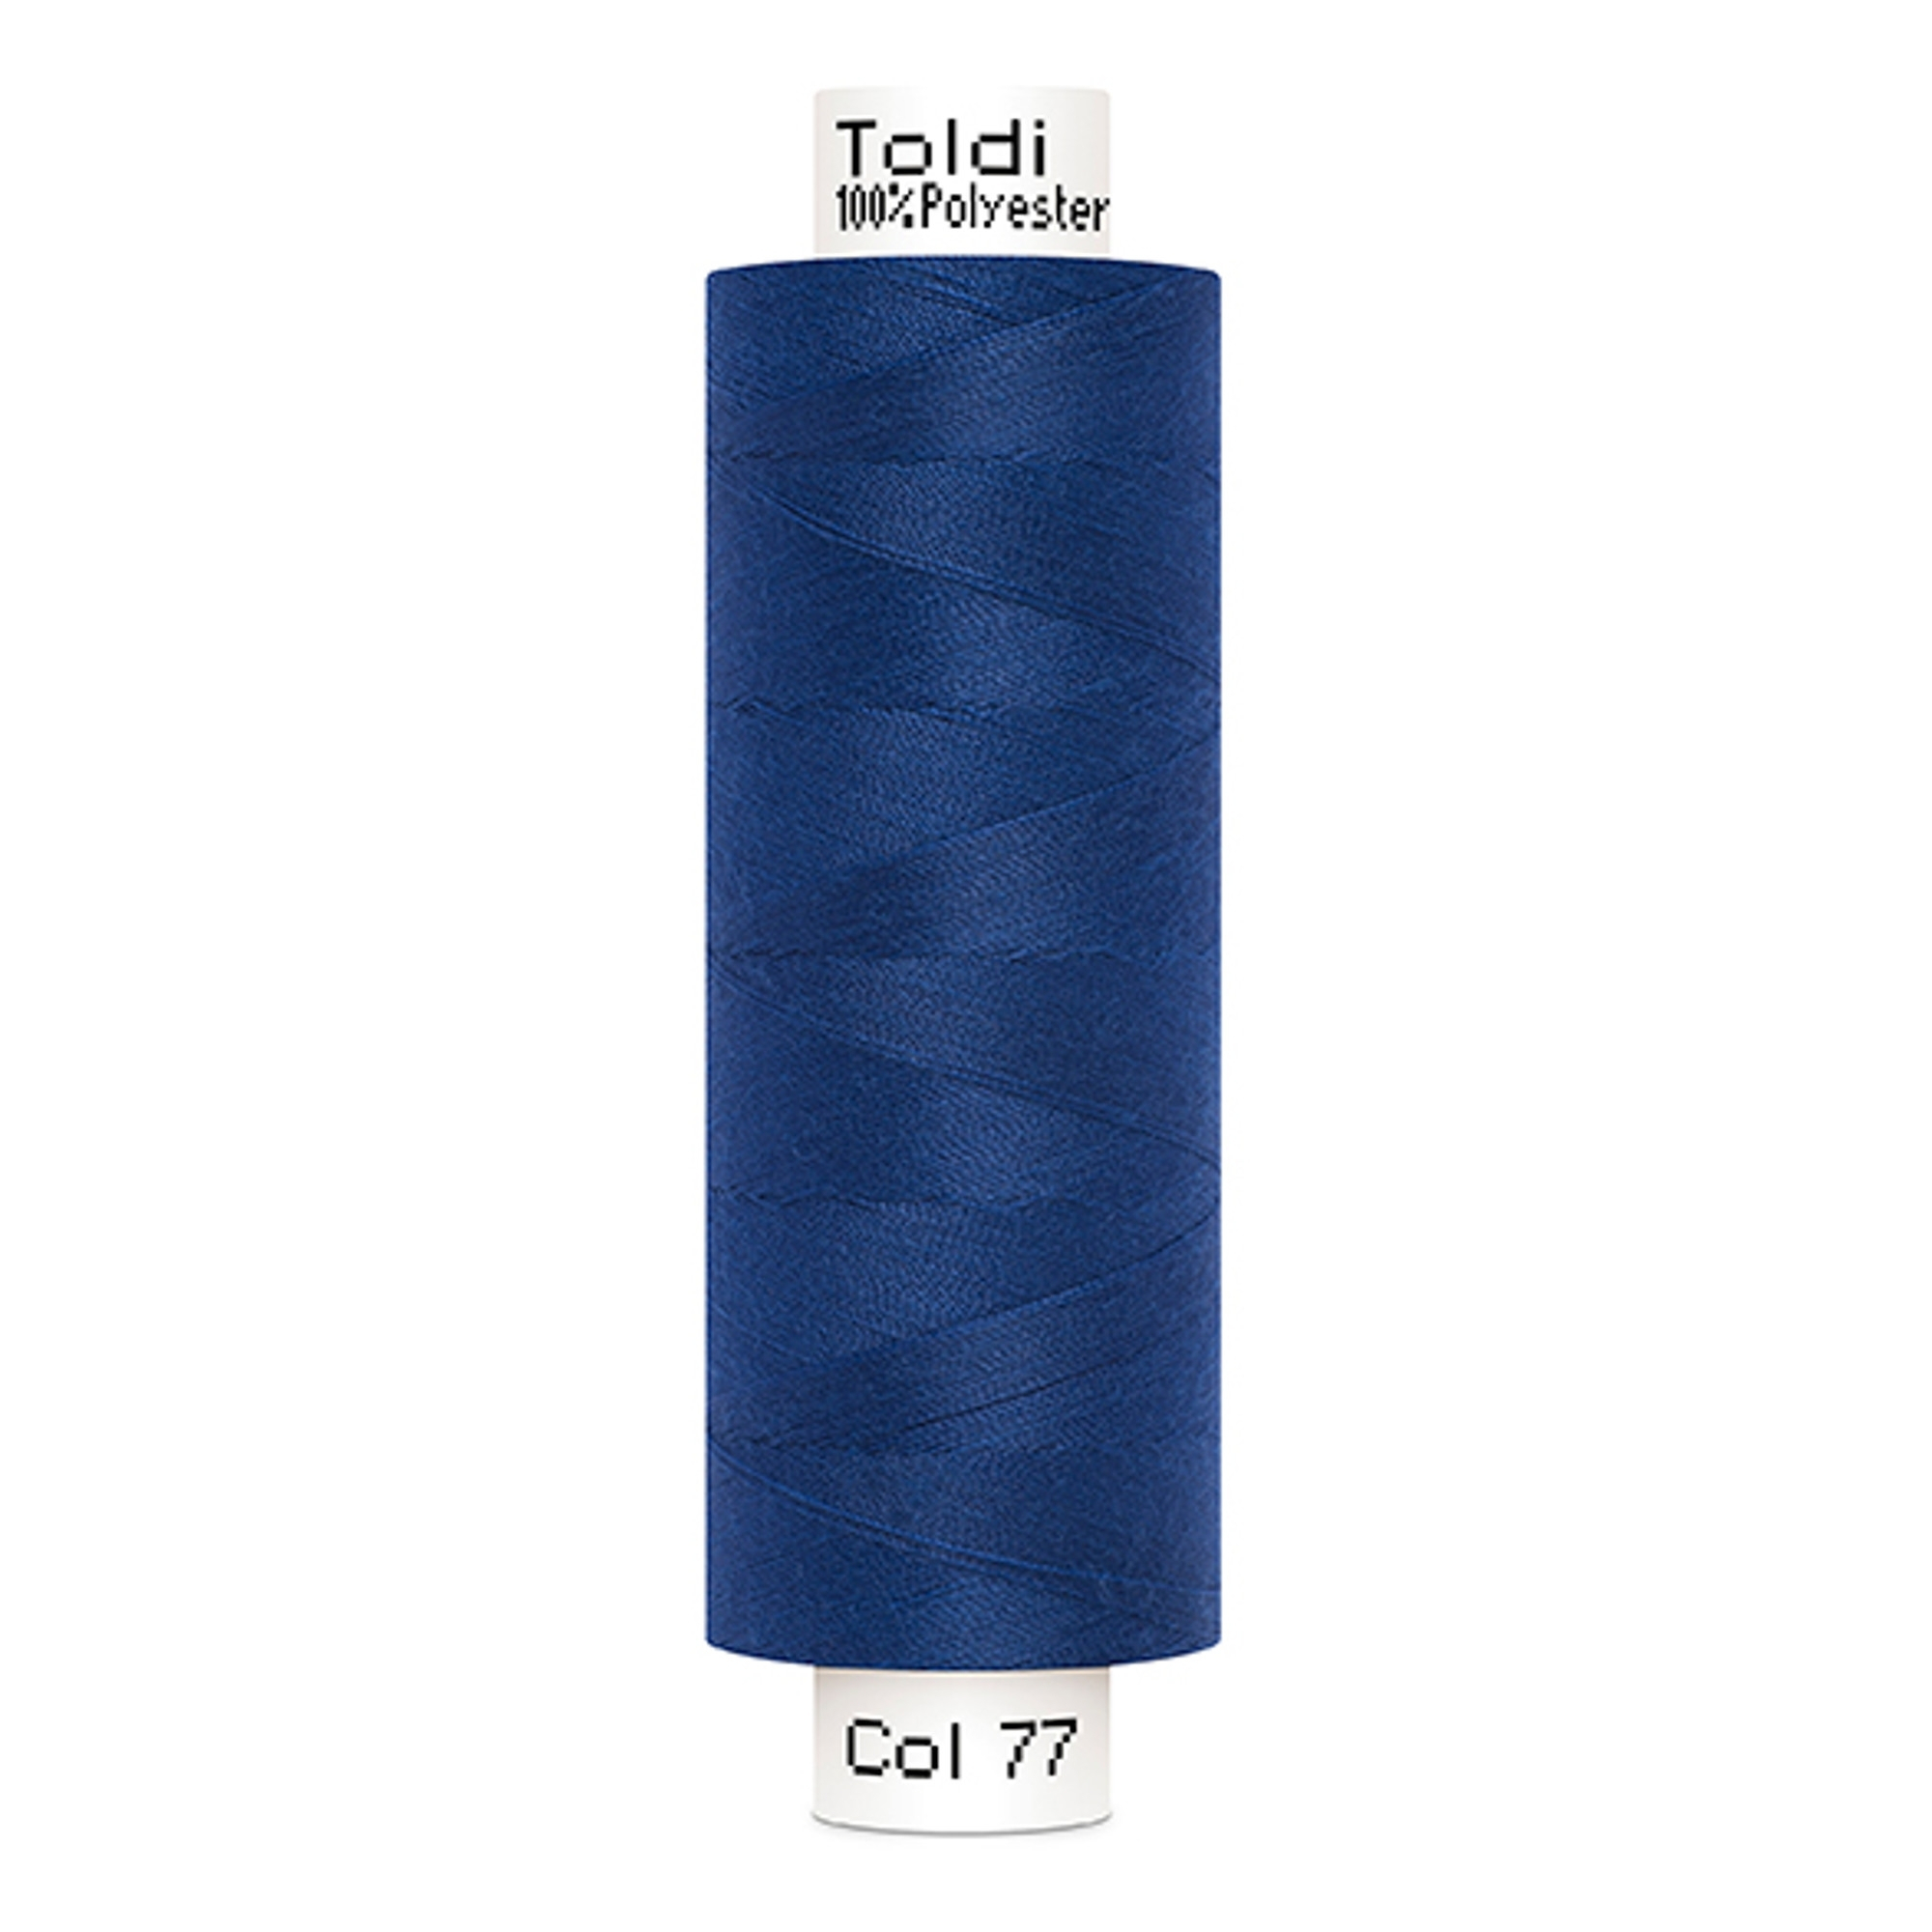 Gütermann Toldi Sewing Thread, 500 m, blauw | 707589-77 | blau